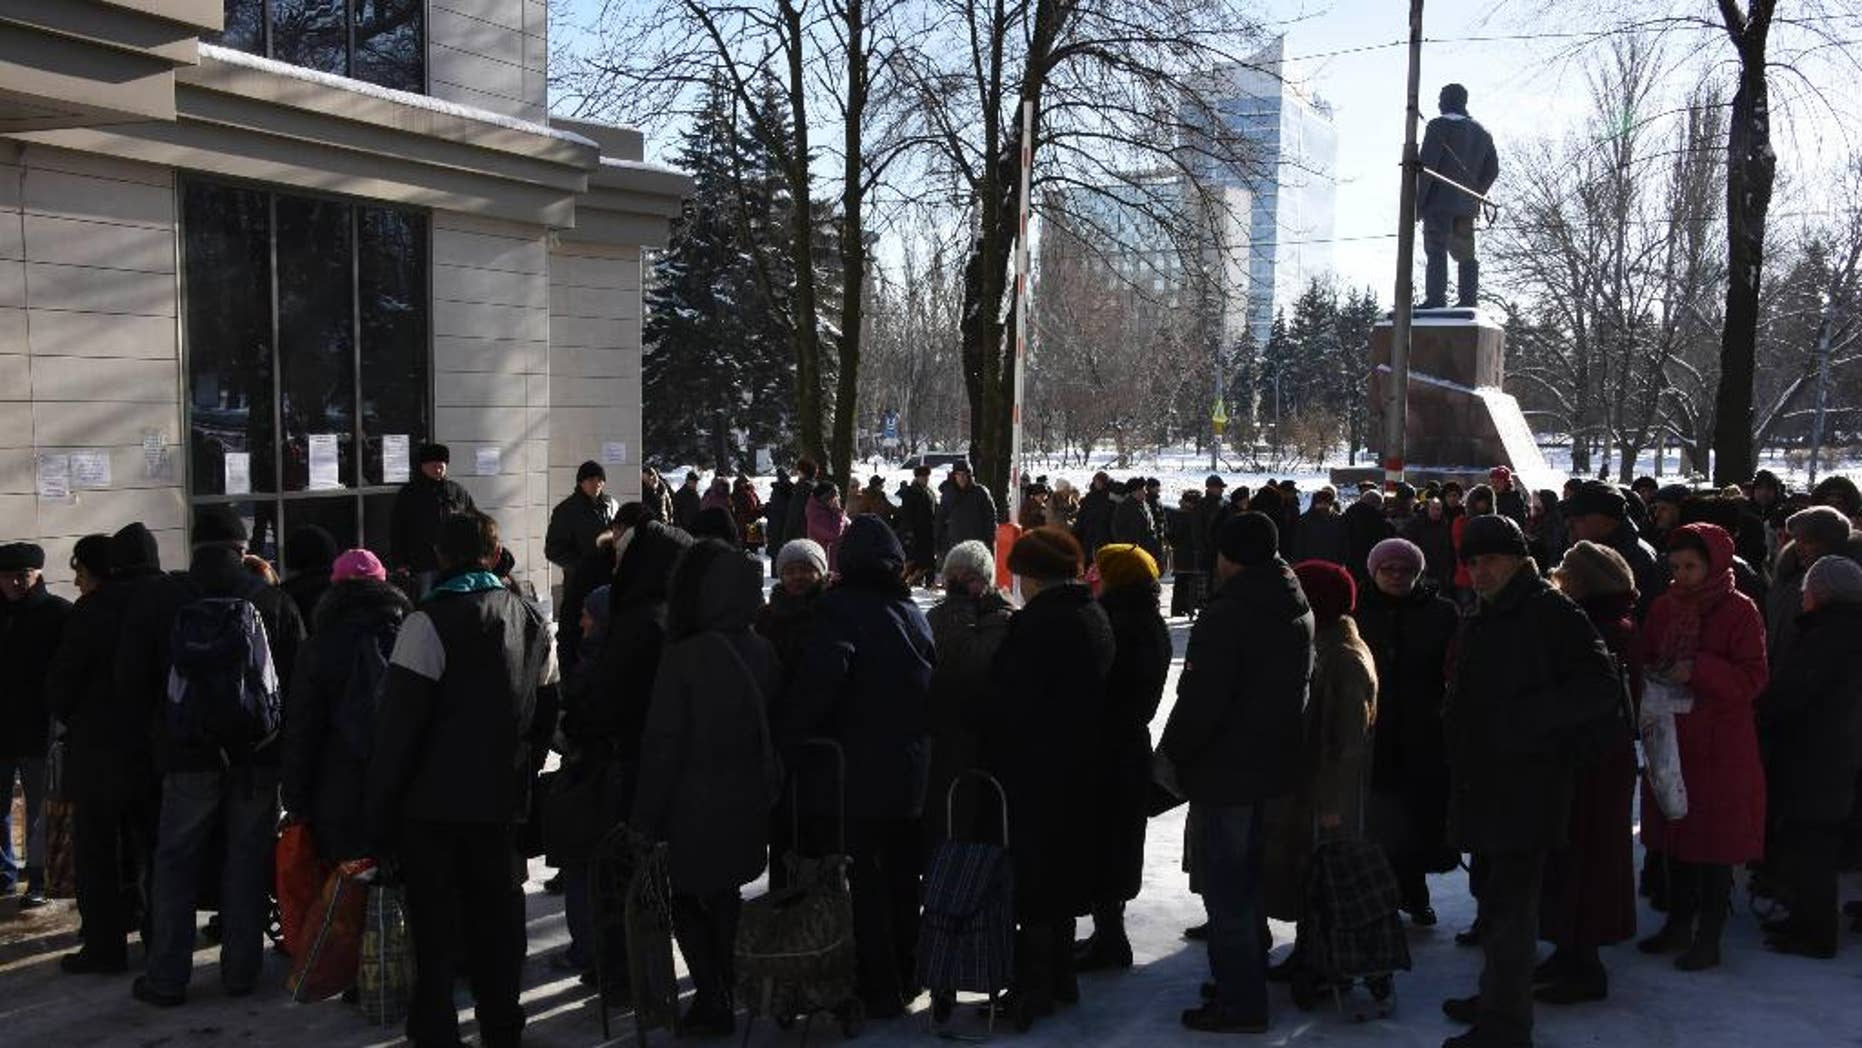 People queue to receive humanitarian aid from the charitable foundation of Ukrainian billionaire Rinat Akhmetov, whose vast wealth is founded on the industrial output of Donetsk coal-rich region, in Donetsk, Eastern Ukraine, Tuesday, Jan. 13, 2015. Akhmetov is contentious figure in eastern Ukraine. Although a major provider of employment, he is regarded with profound suspicion by much of the impoverished local population. Still, his standing improves with every consignment of goods that reaches separatist-held regions. Amnesty International said it received reports before the New Year holidays of volunteer battalions fighting alongside Ukrainian government forces of preventing the Akhmetov convoys from getting through. The battalion justified their actions by arguing that the food and clothes in the trucks could ultimately help to support the separatist cause, Amnesty says. (AP Photo/ Mstyslav Chernov)